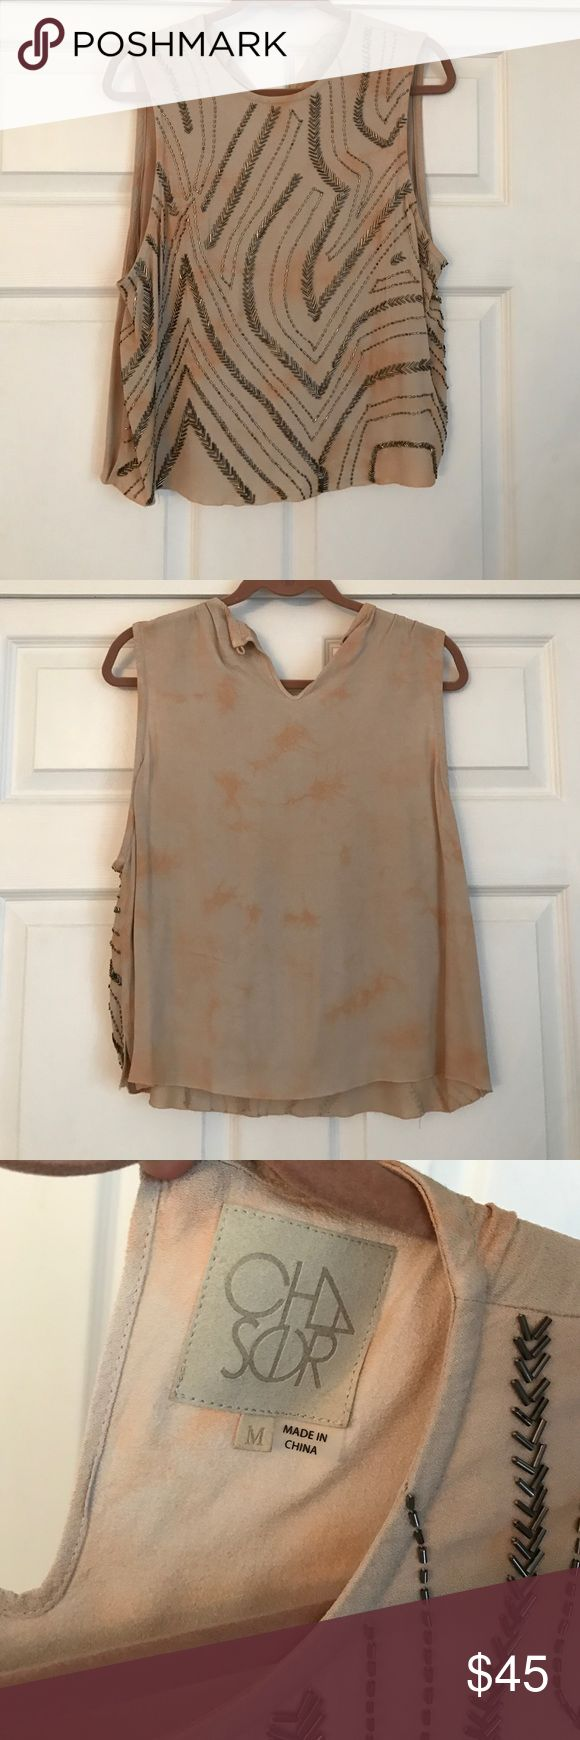 ACHSOR Sequin Tank Top Selling this never-worn sequin tank top in a size medium. I'm not positive how to pronounce the brand but it's one that Nordstrom carries. The pattern is a beige/tan tie-dye with sequins all over the front. It has an eyelet closure on the back. Nordstrom Tops Tank Tops